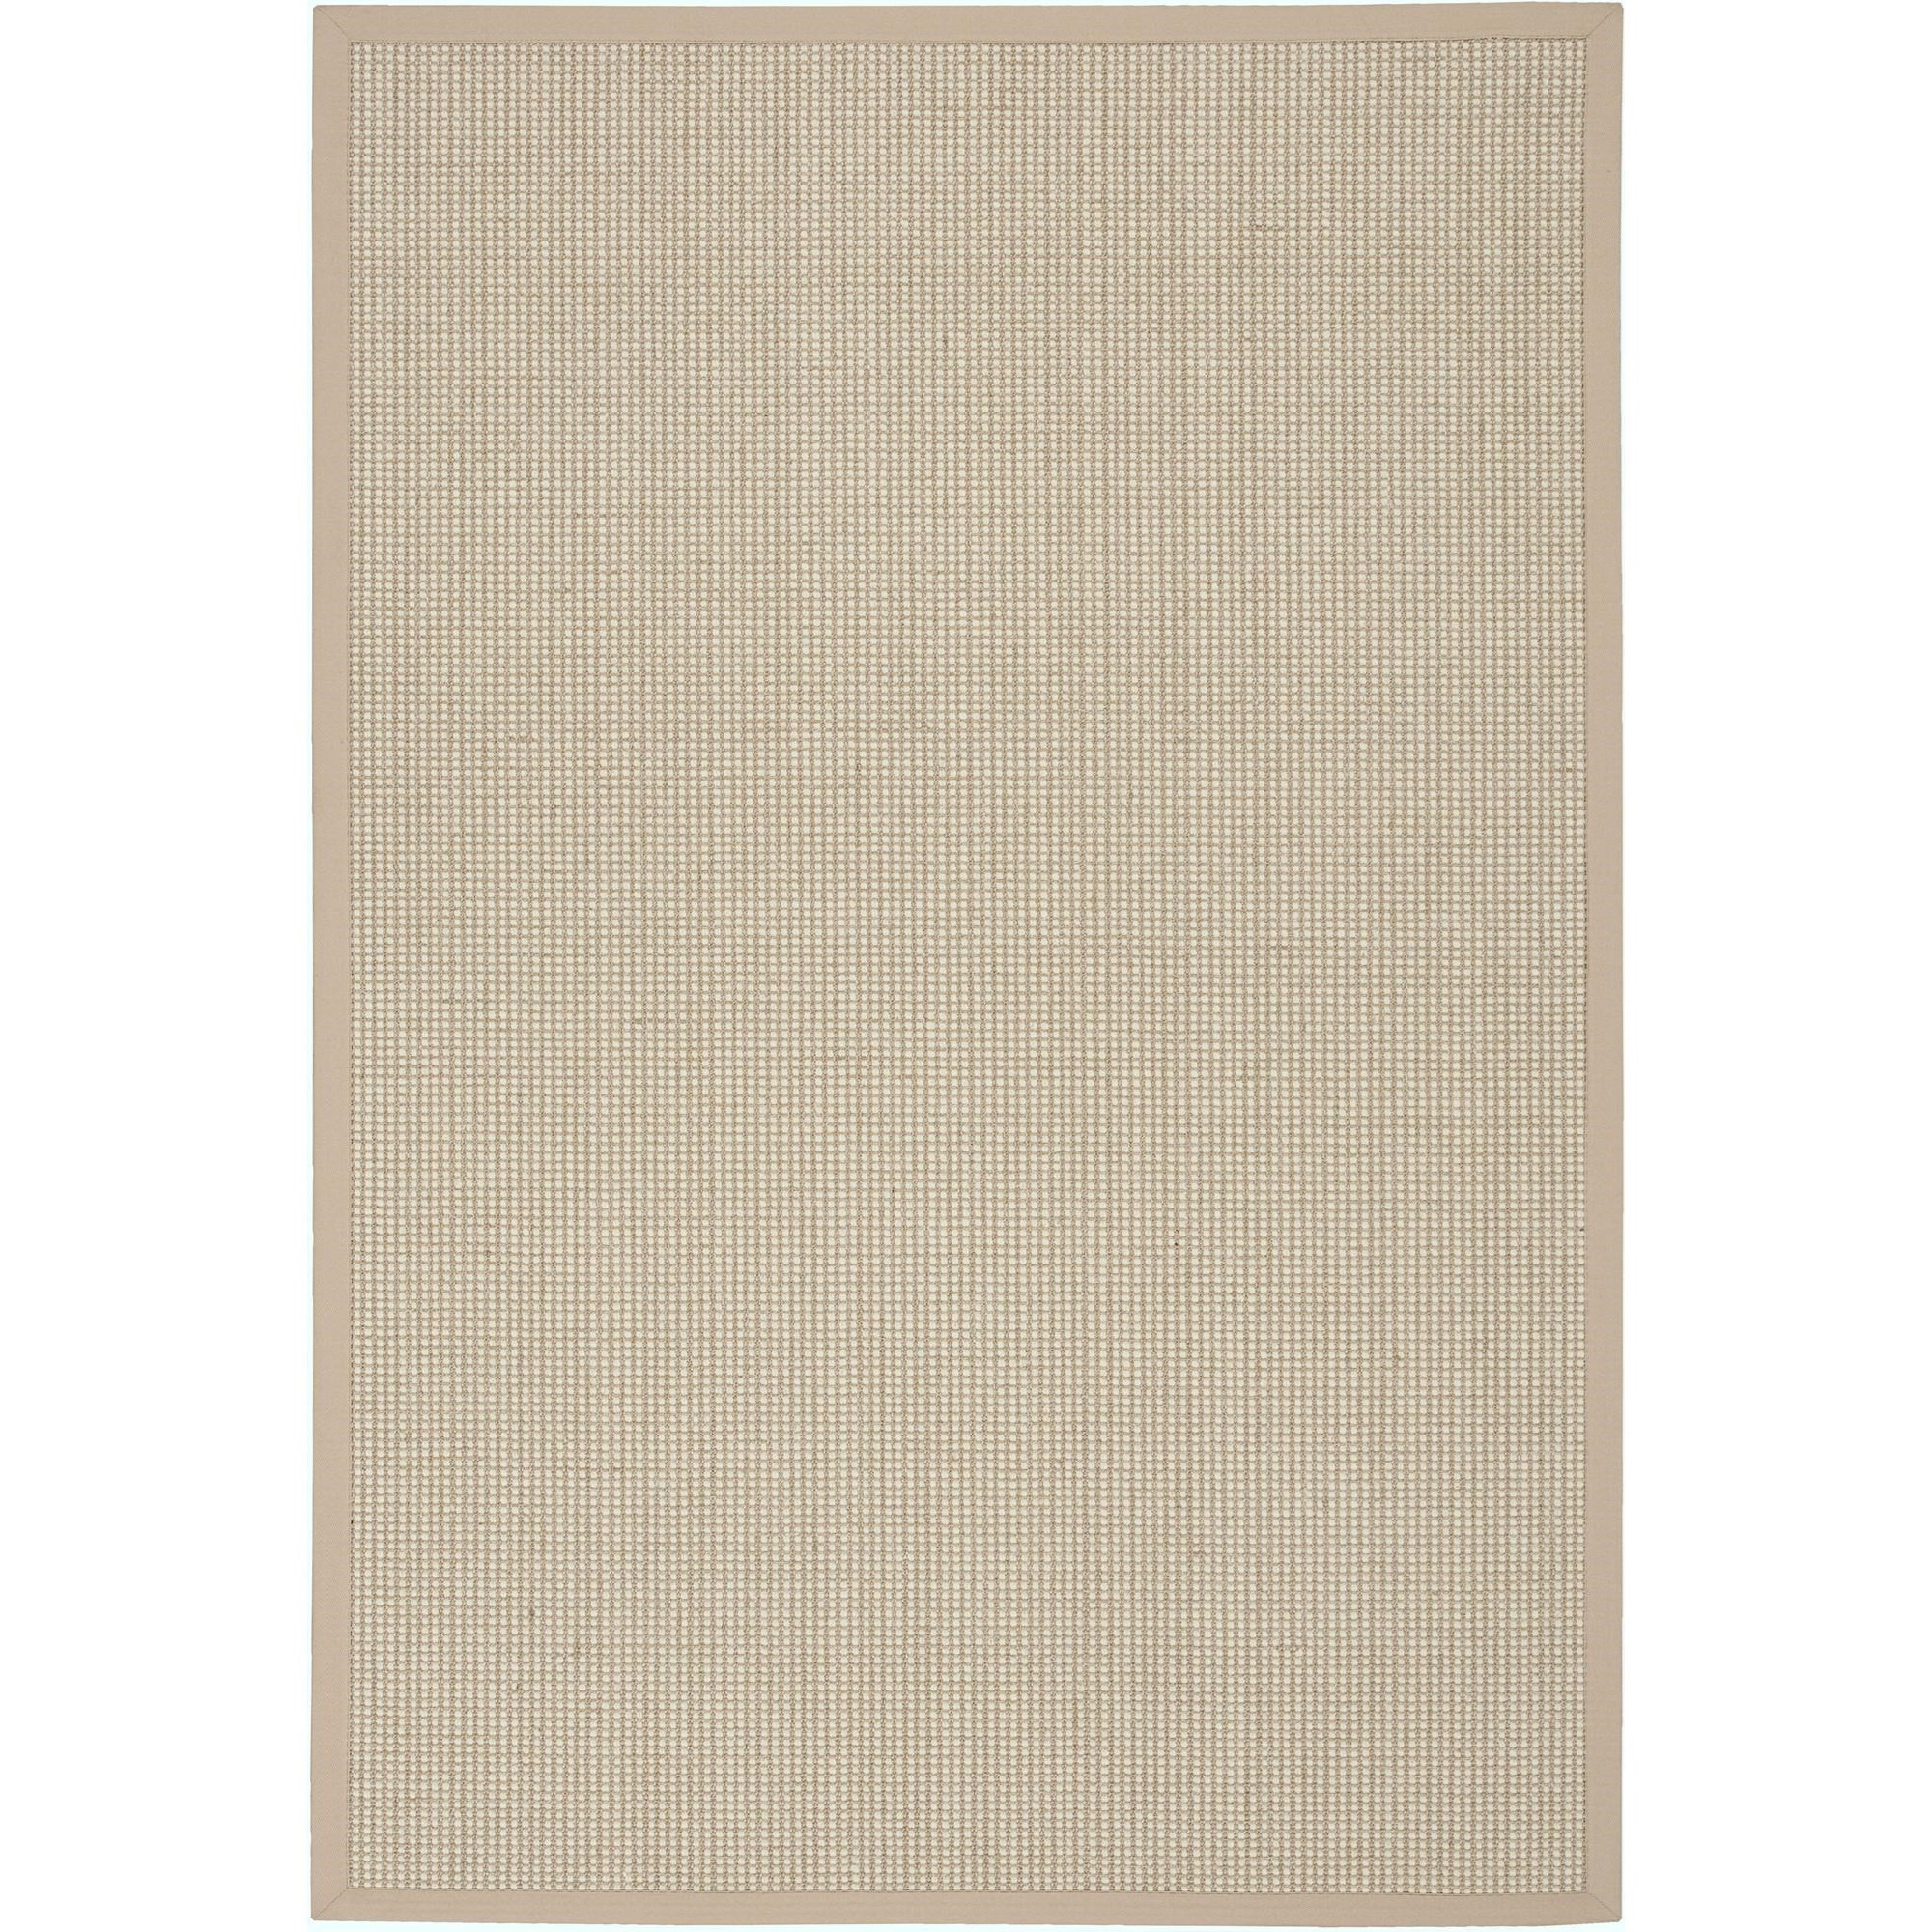 "Nourison Kathy Ireland Home presents Seascape 5' x 7'6"" Shell Area Rug - Item Number: 31376"